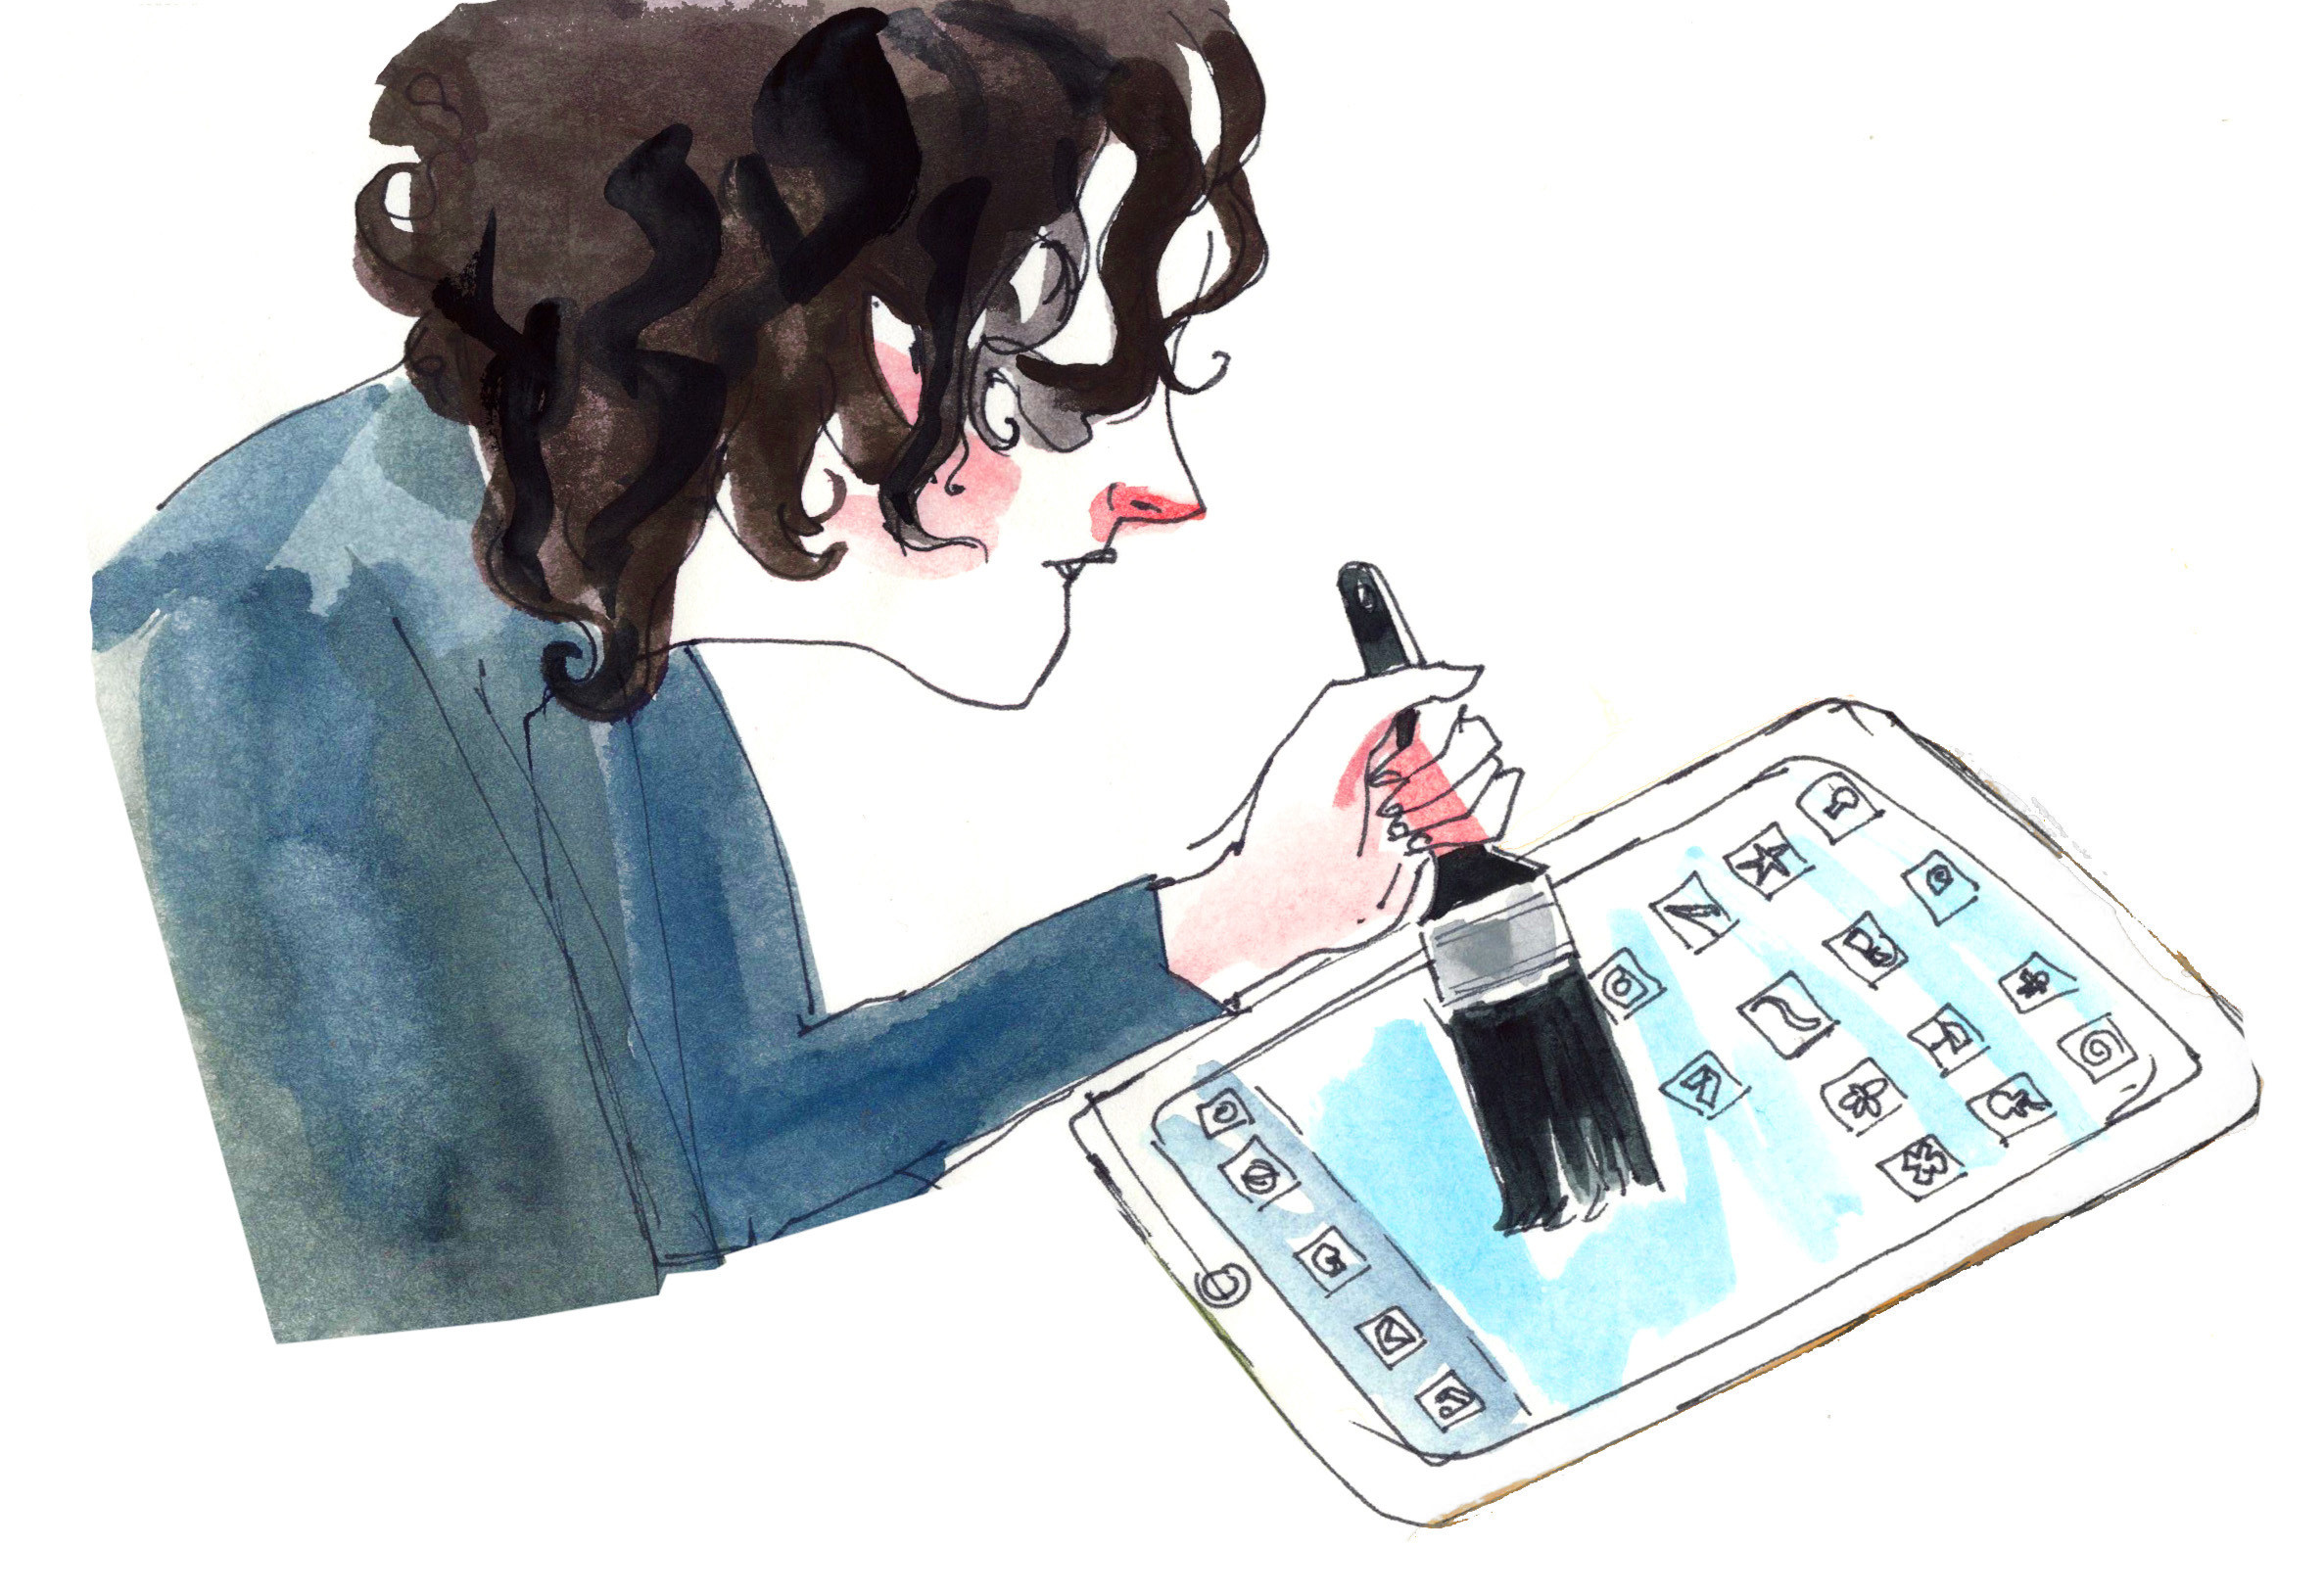 Creative Apps: The Apps Artists Use to Get Work Done